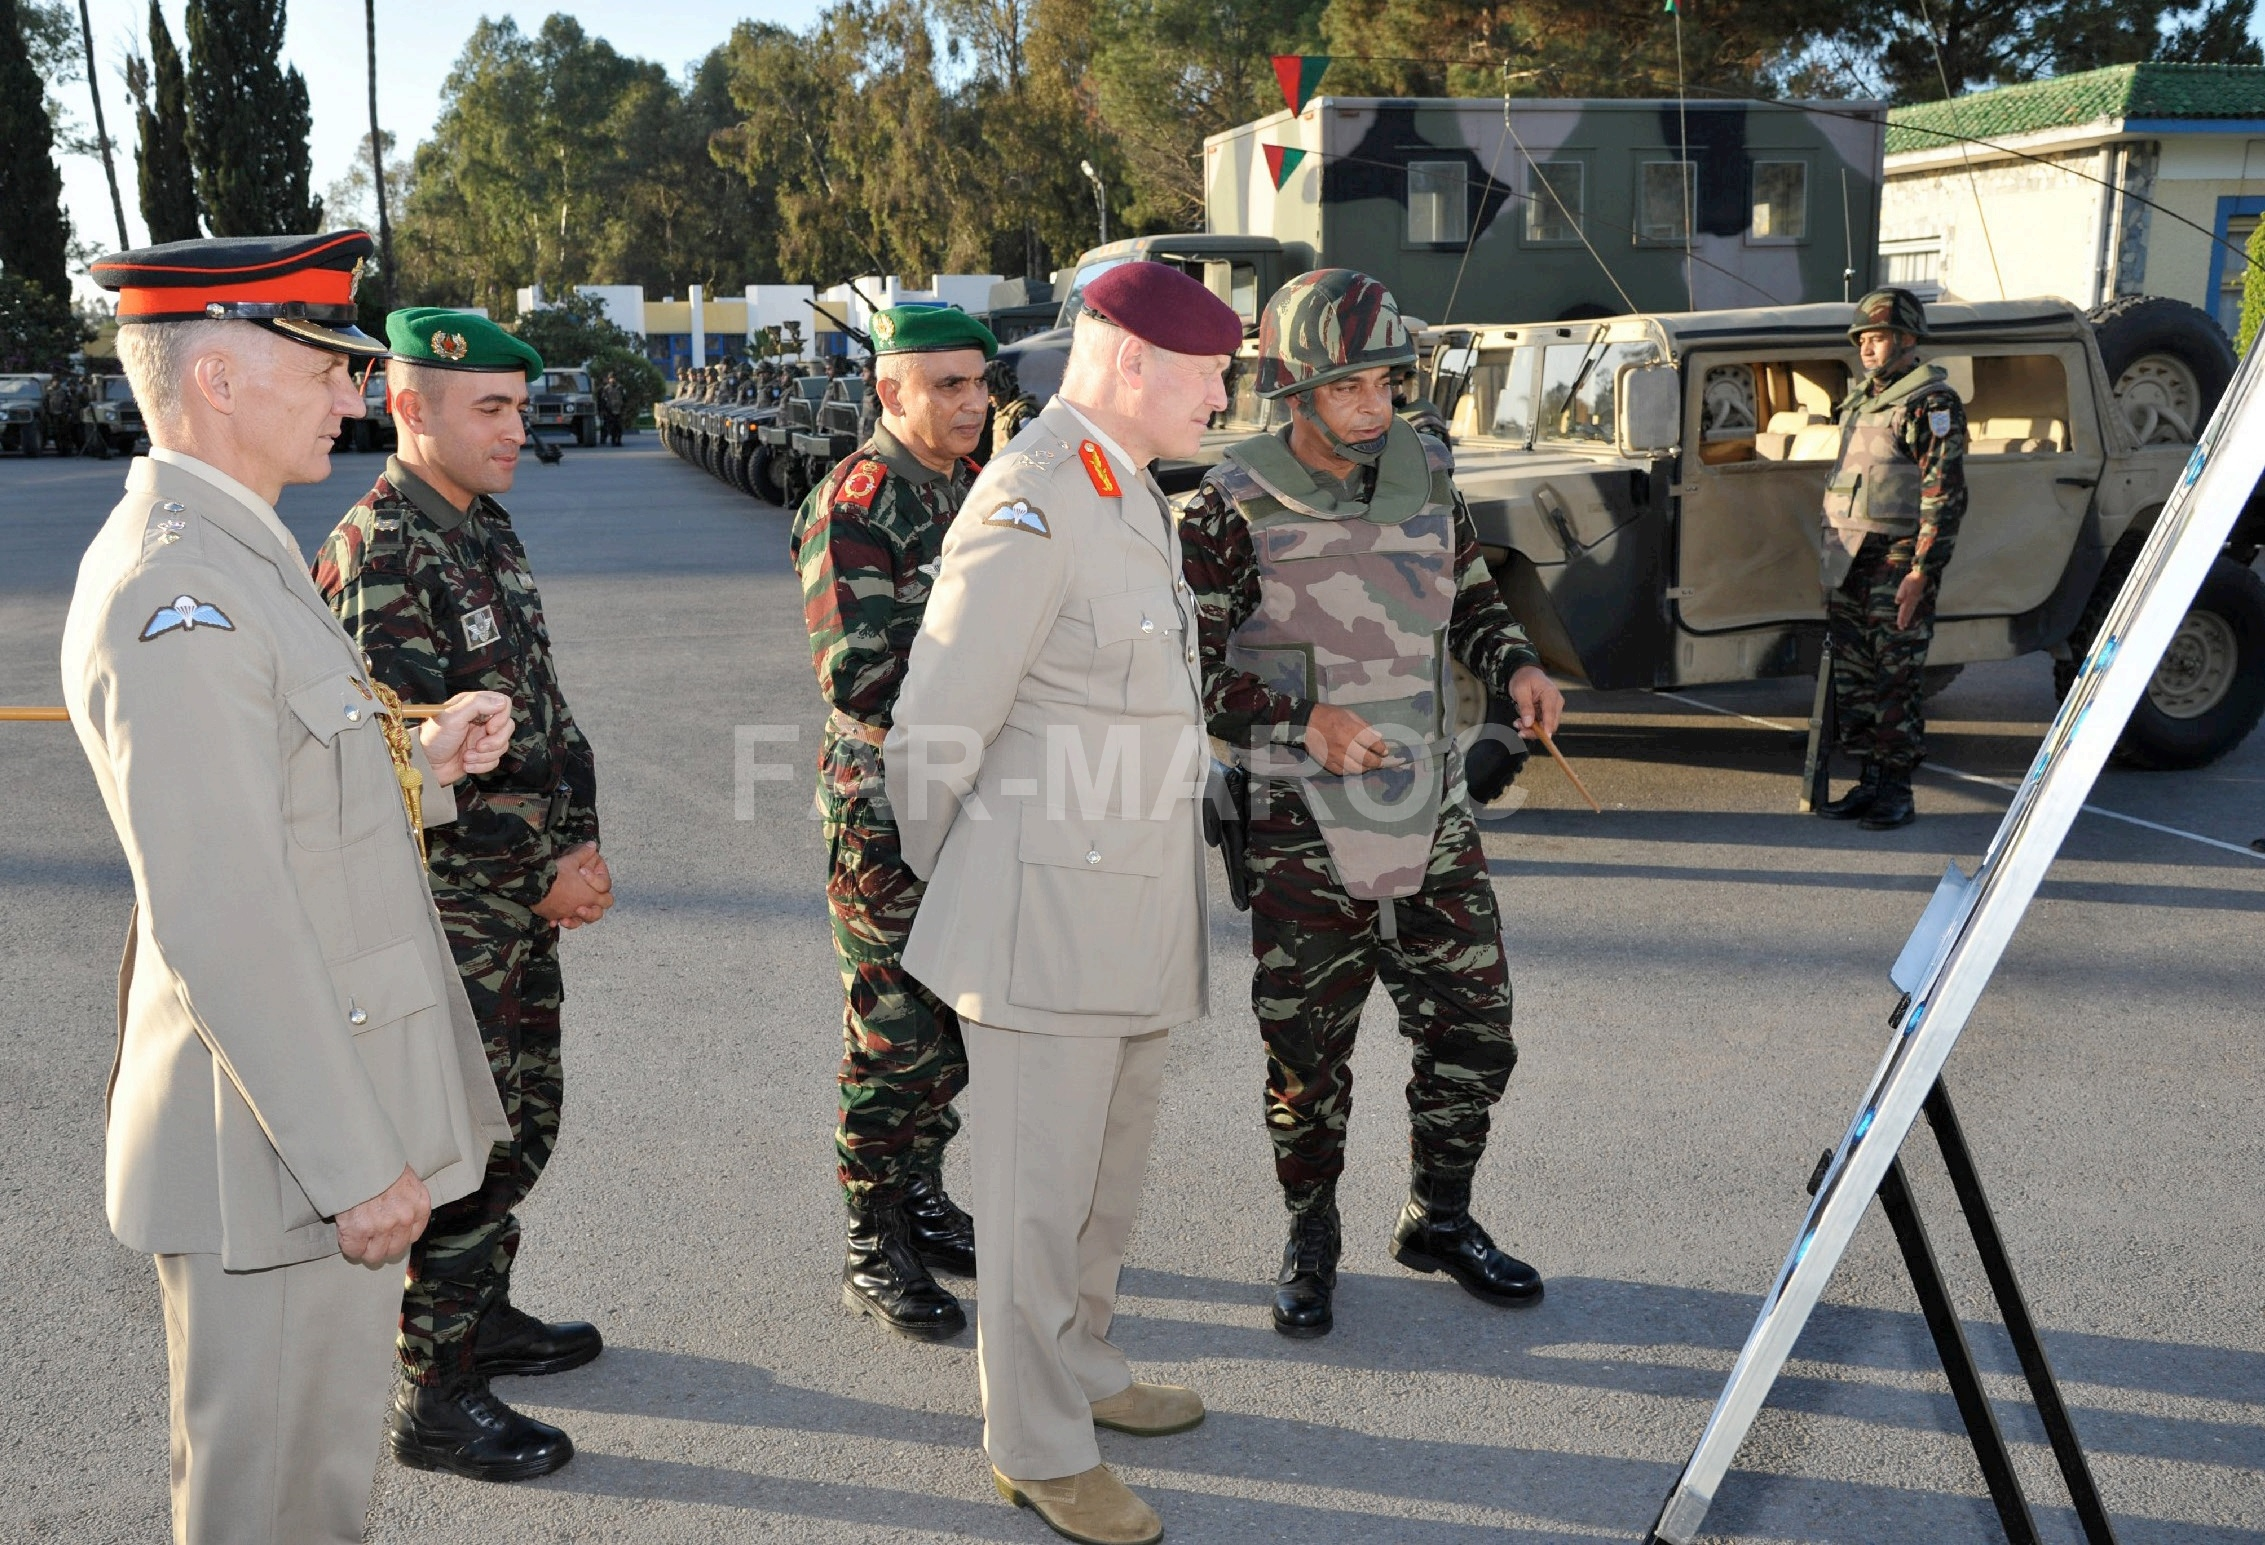 Parachutistes Militaires Marocains / Moroccan Paratroopers - Page 14 49288310736_6fc2f44bfb_o